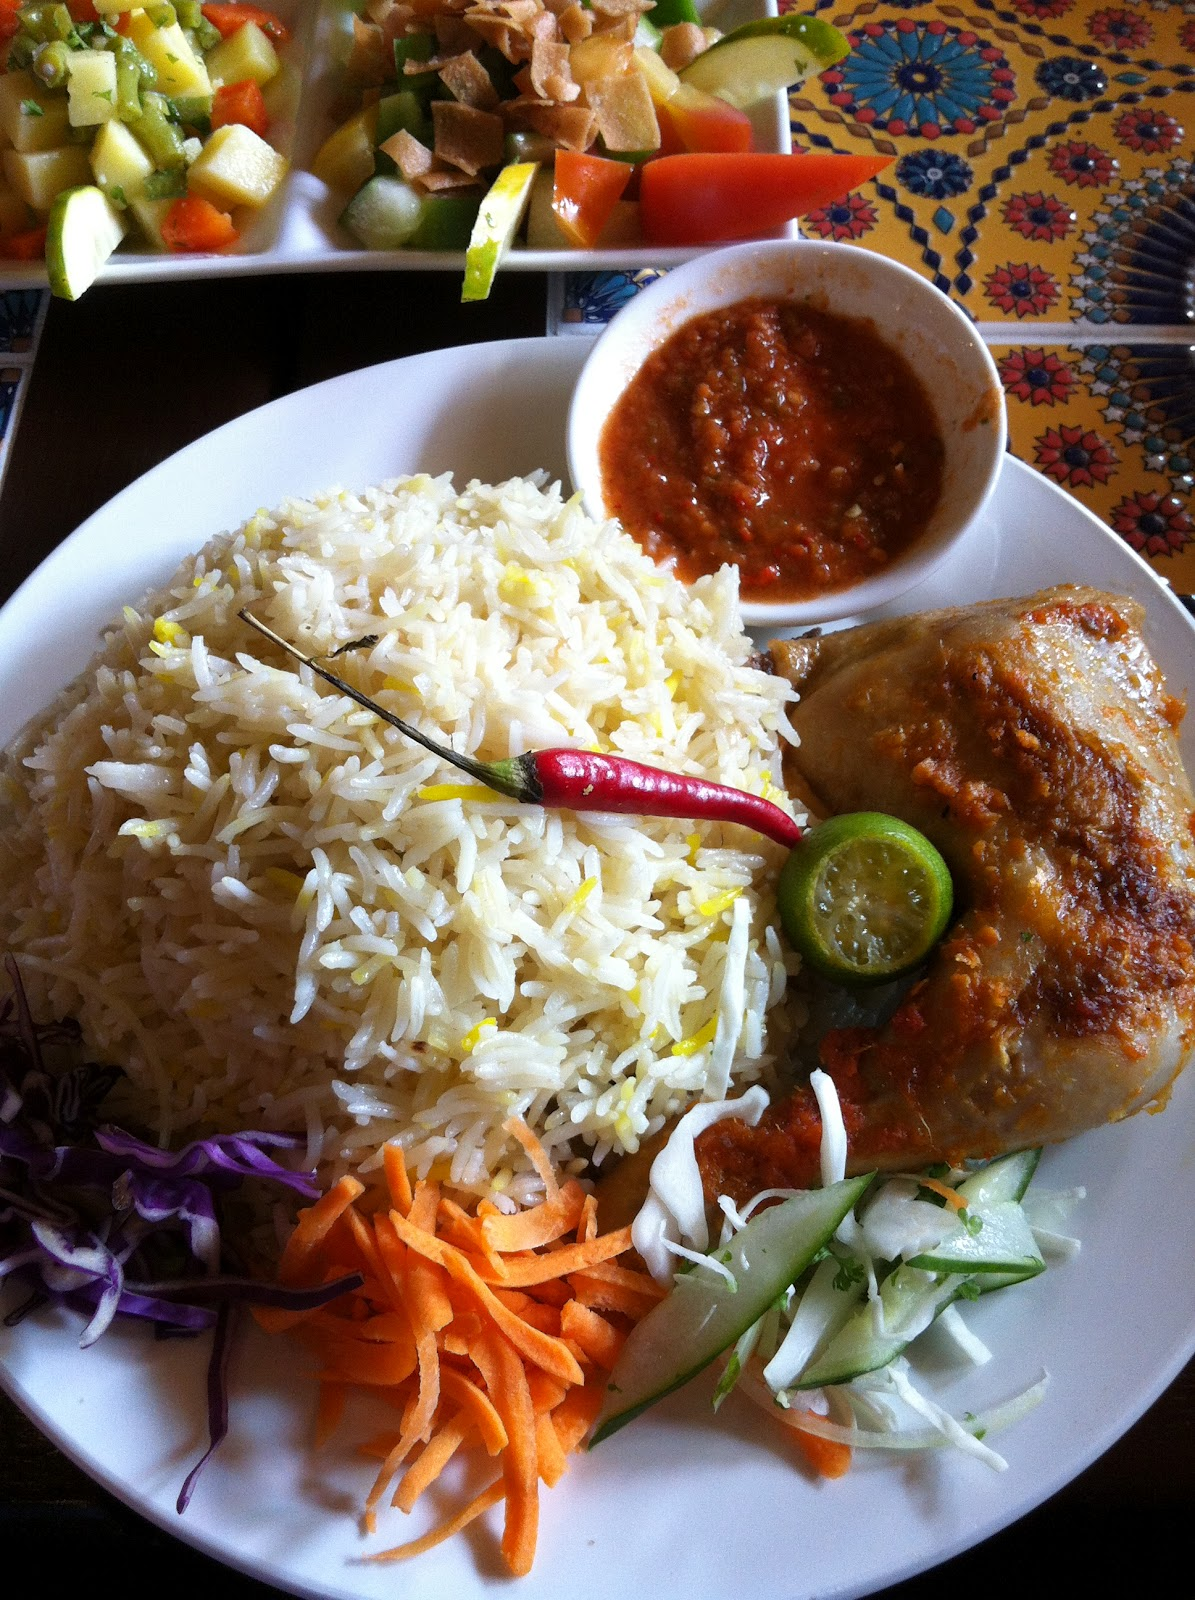 The anecdotes casablanca restaurant cafe arabic and for Ahmads persian cuisine